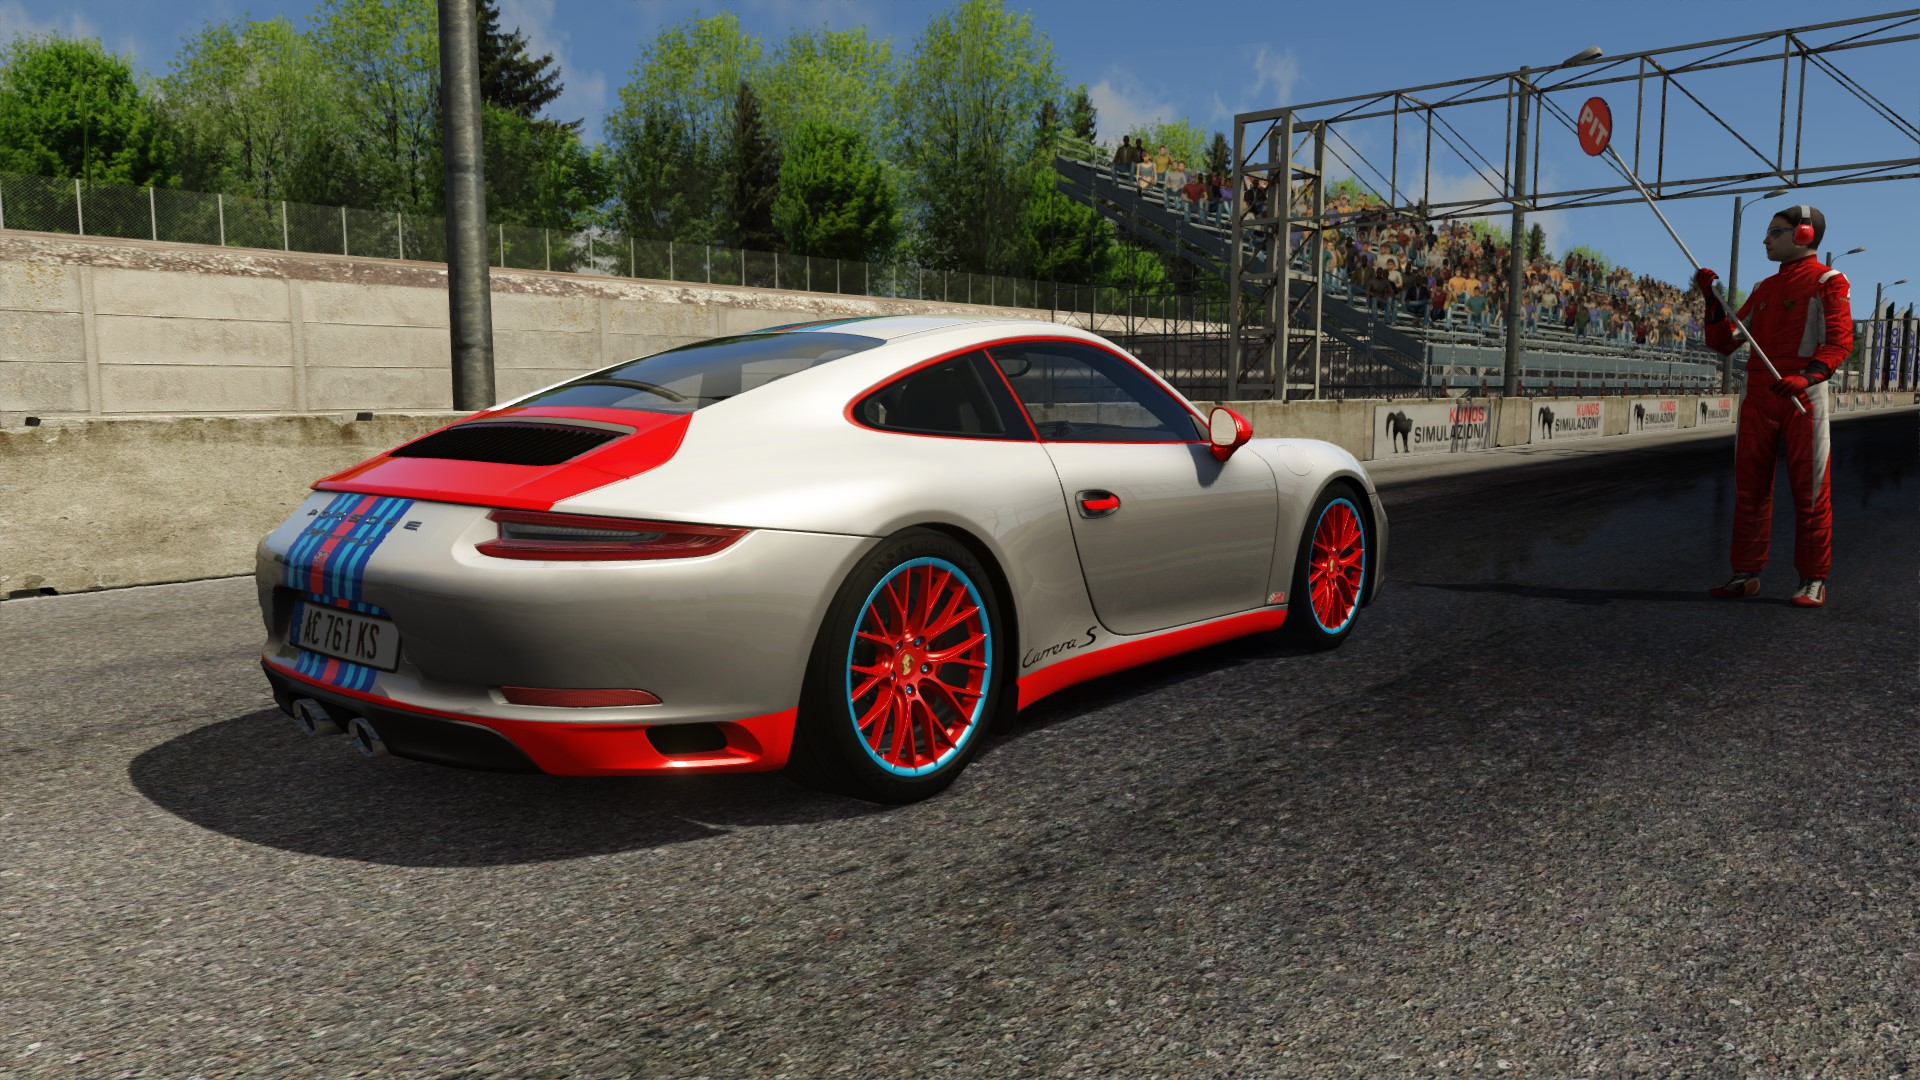 Screenshot_ks_porsche_991_carrera_s_ks_drag_27-2-117-11-31-18.jpg